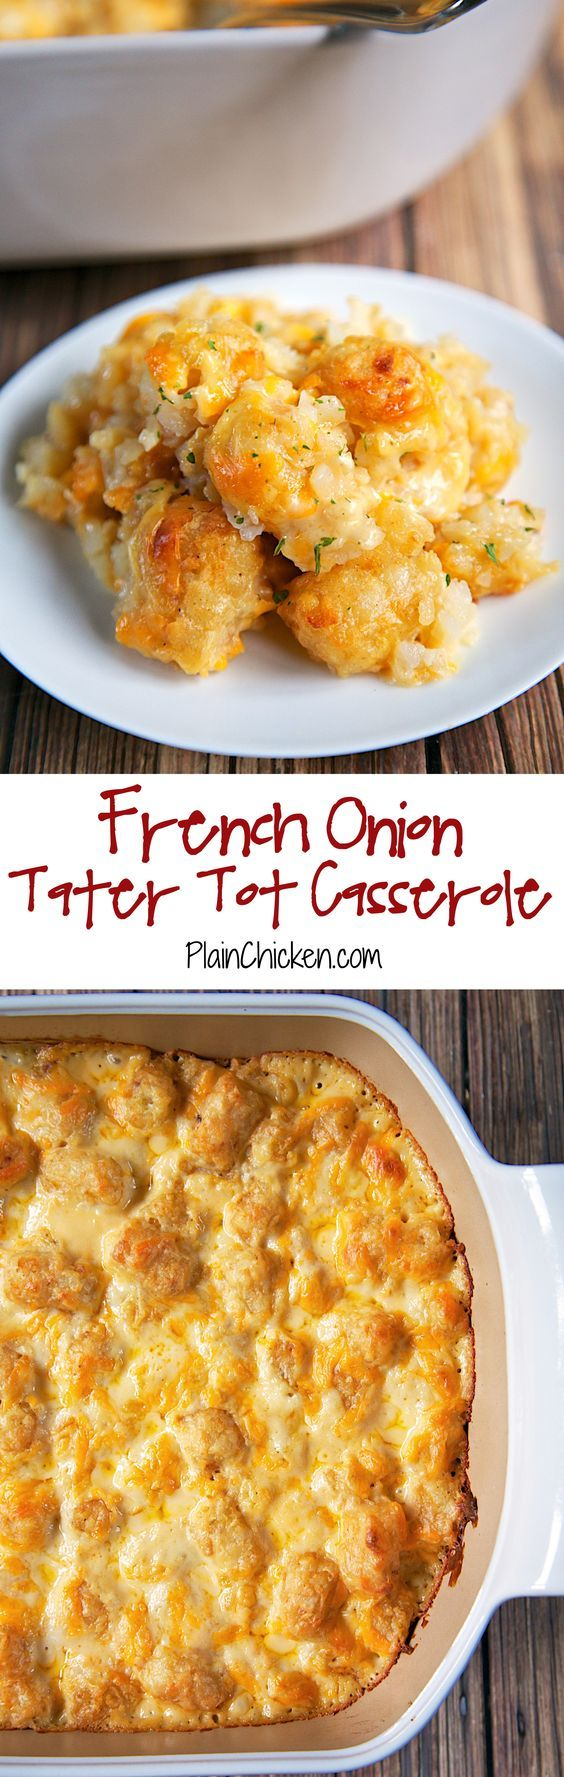 French Onion Tater Tot Casserole Recipe - tater tots, french onion dip, cream of chicken soup, cheese - LOVE this casserole! Can make ahead and freezer for later. You can even split it between two foil pans - one for now and one for the freezer. Super easy side dish with only 4 ingredients that tastes great!: